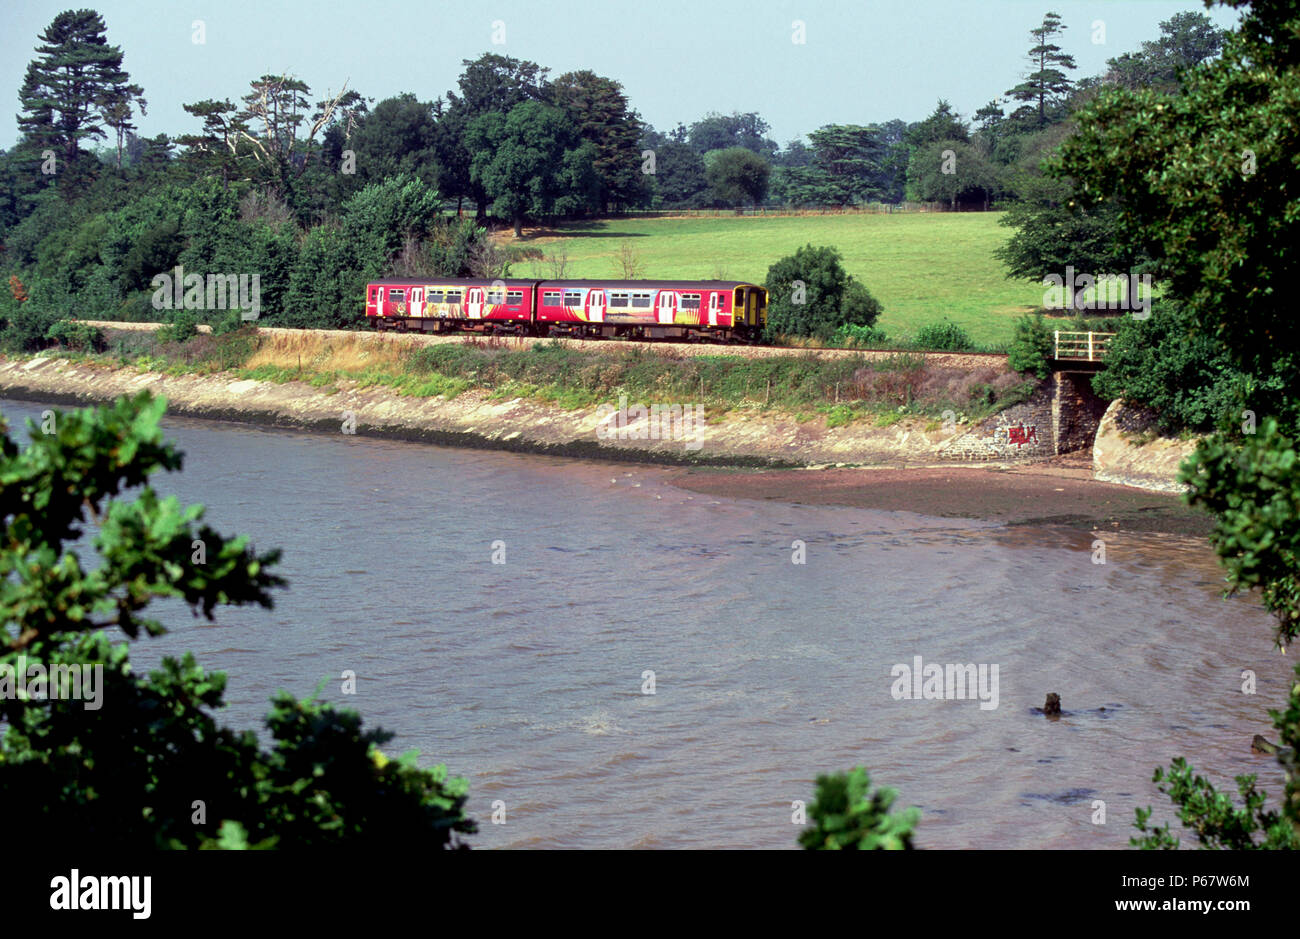 The Devon branchlines are worked by various DMU trainsets including this view of the Exmouth branch where a brightly liveried 2-car Class 150/2 skirts - Stock Image